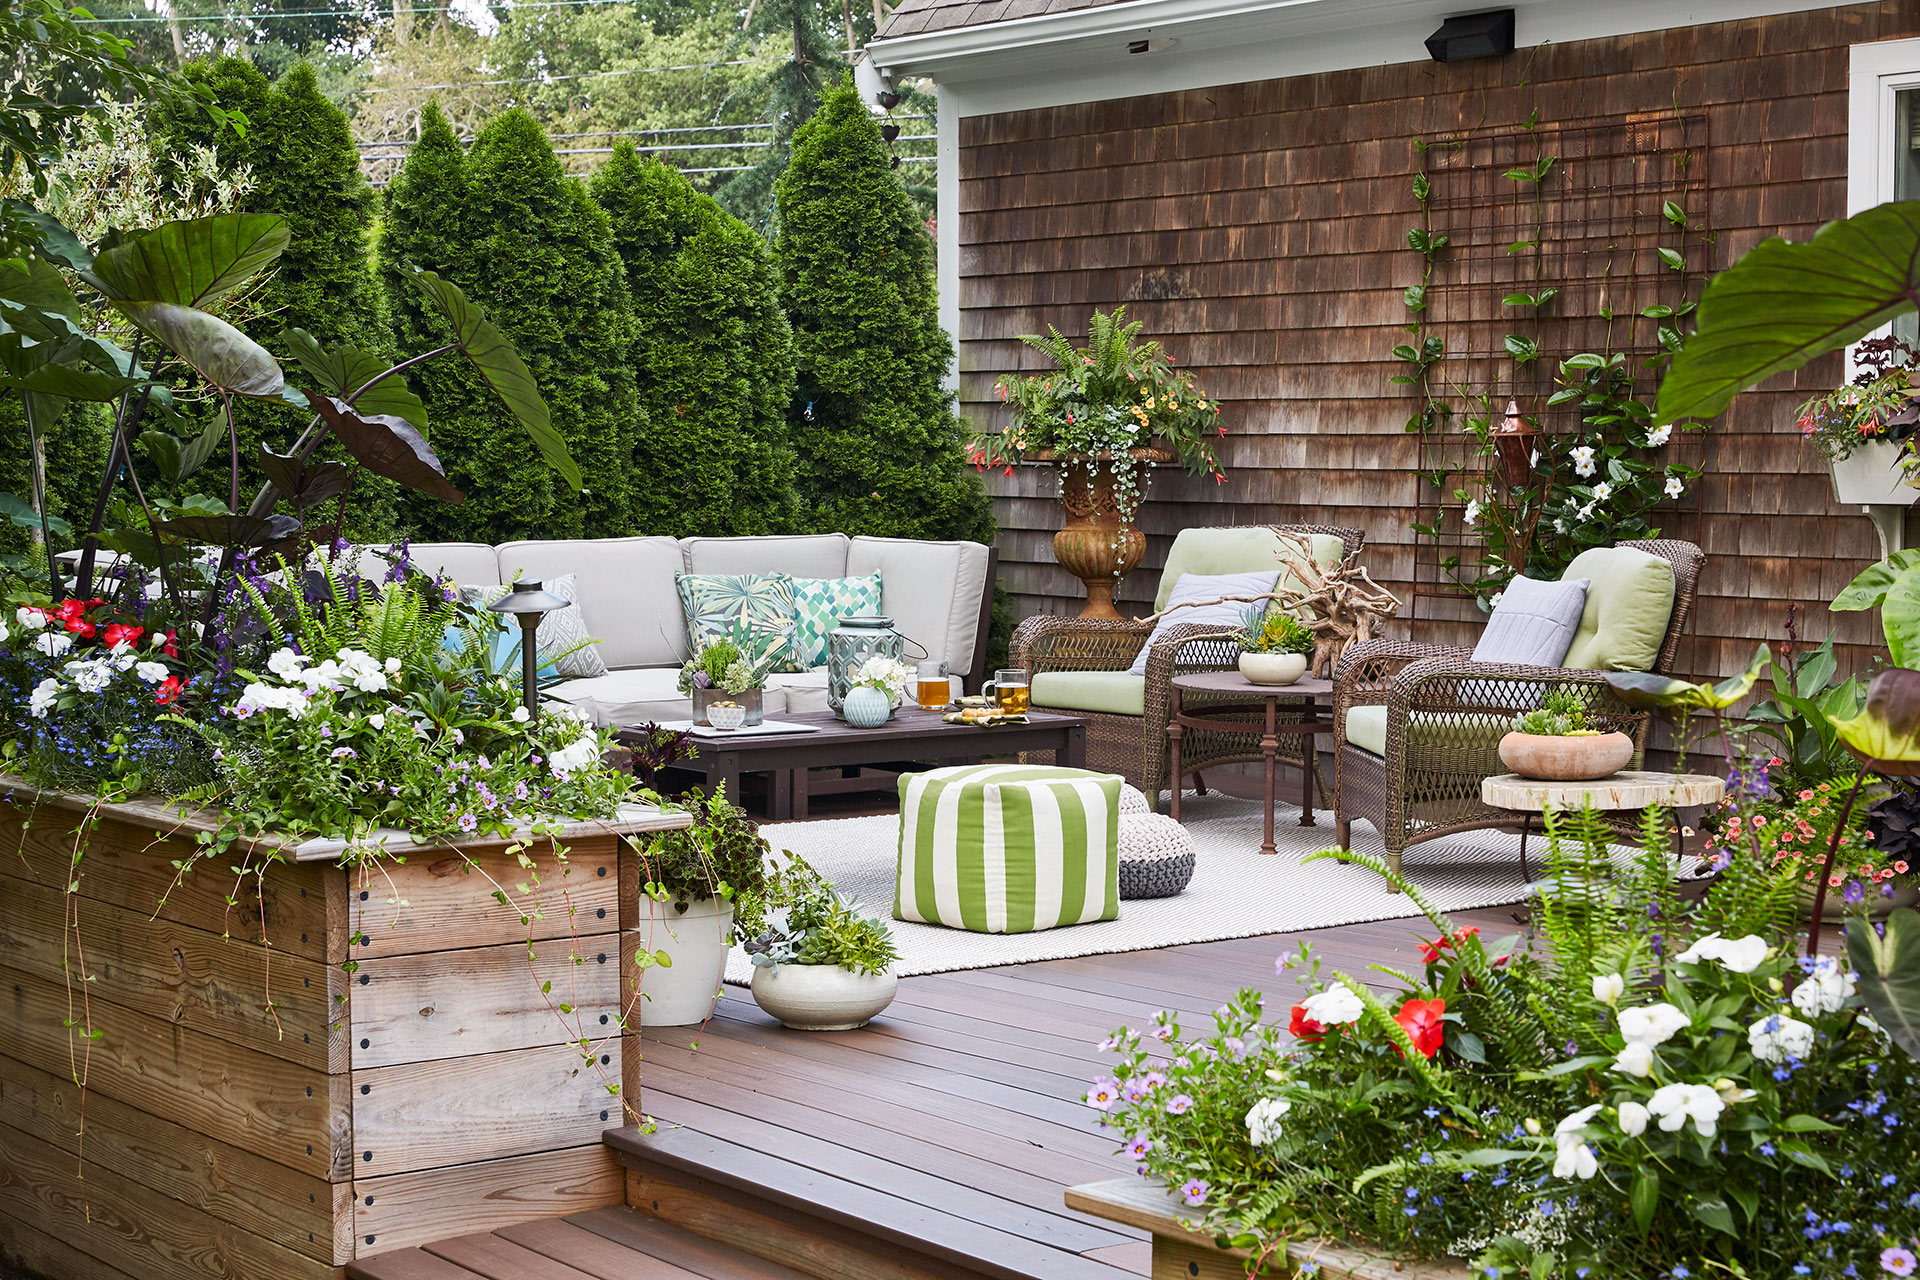 Flowering plants with armchairs and sofa at patio